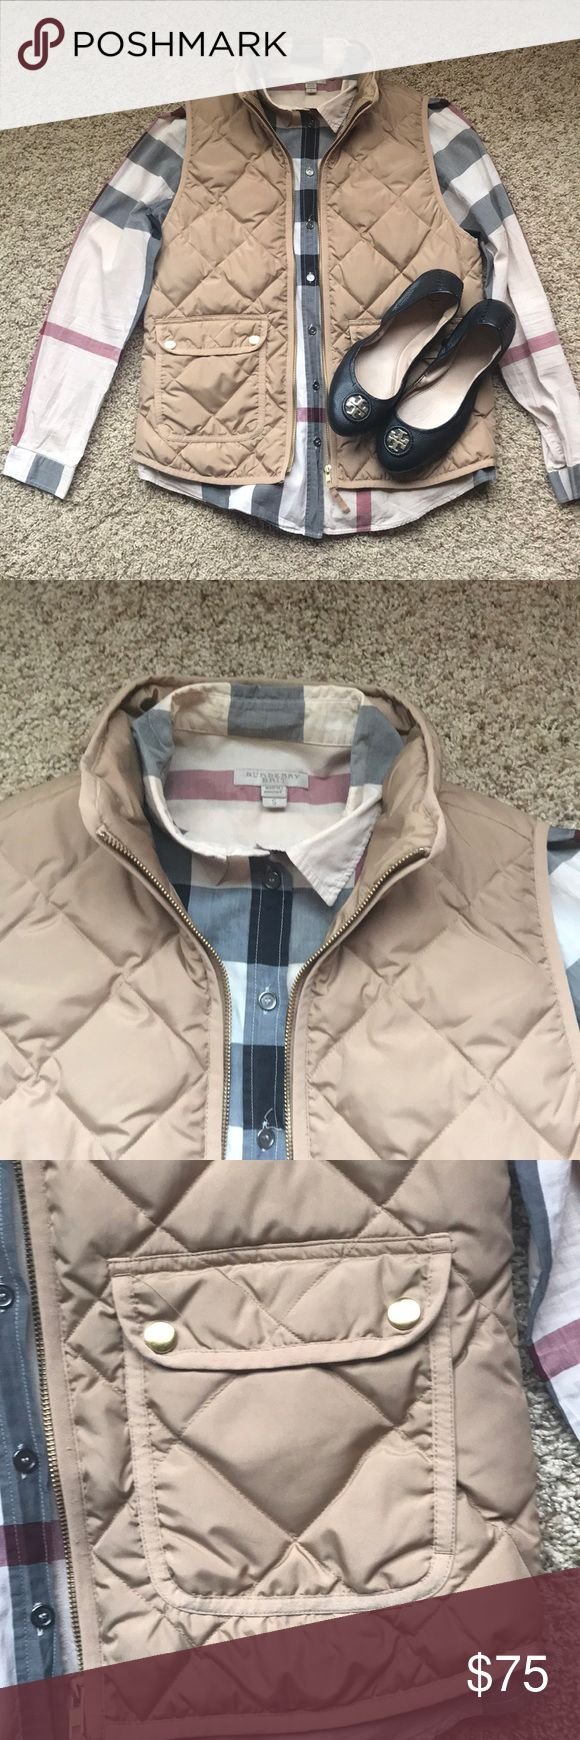 J.Crew Tan/Khaki Quilted Excursion Vest Item has been worn, but is still in great preowned condition. Some light wearing on gold hardware button snaps.   Looks great paired with neutrals! J. Crew Jackets & Coats Vests